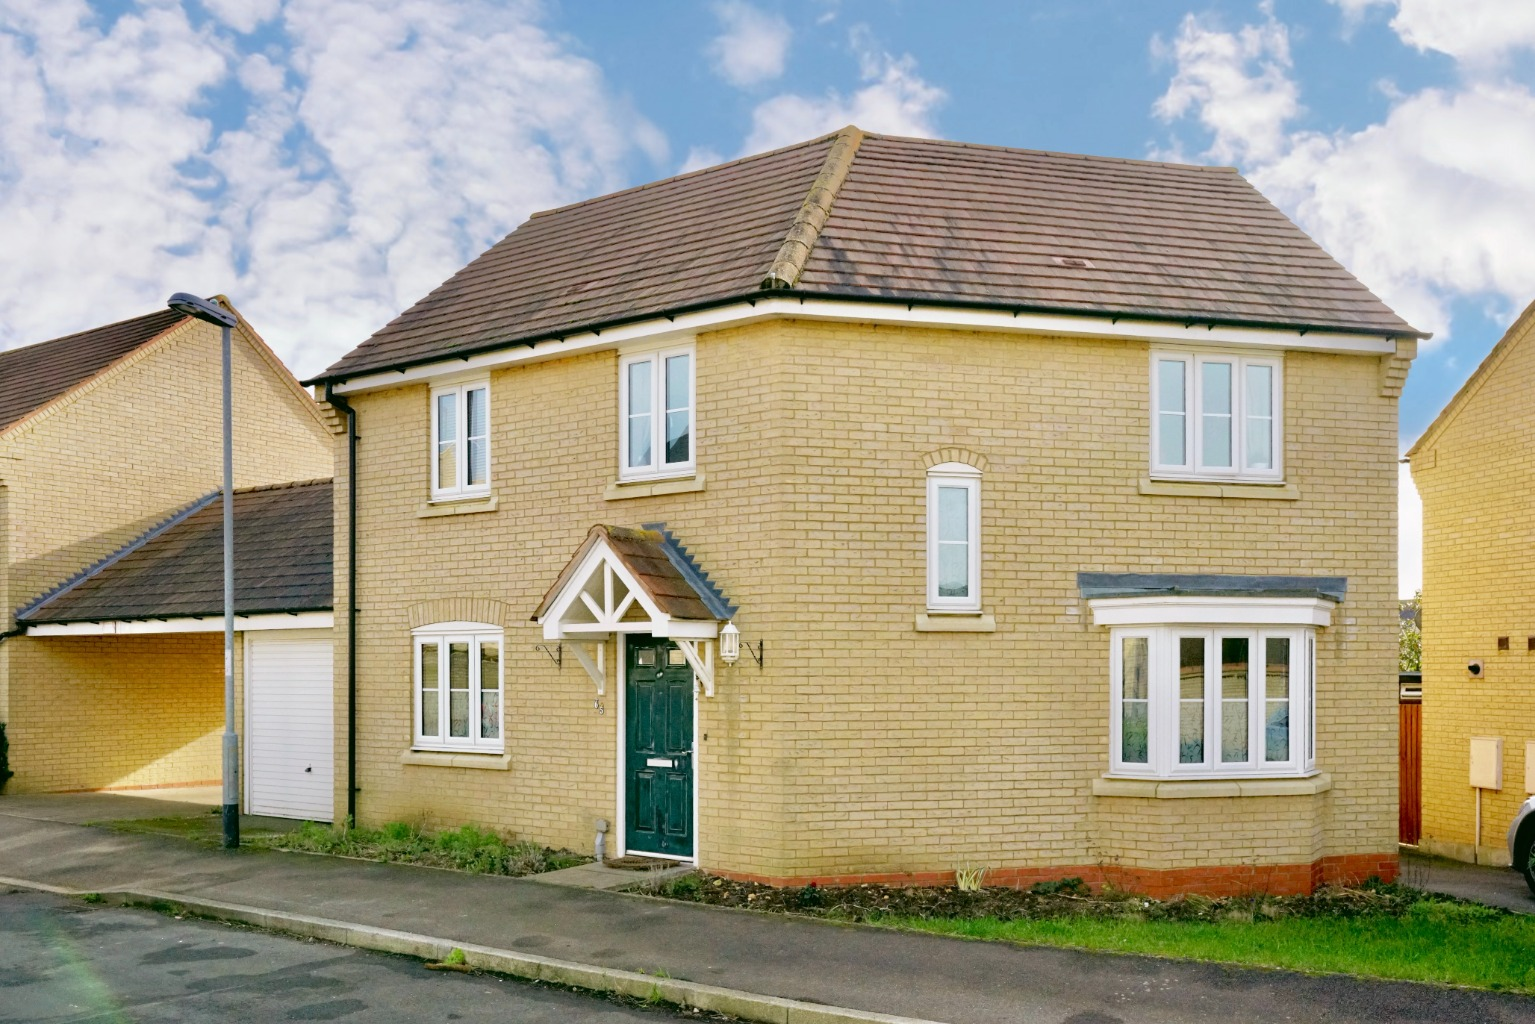 3 bed detached house for sale in Lannesbury Crescent, St. Neots  - Property Image 1